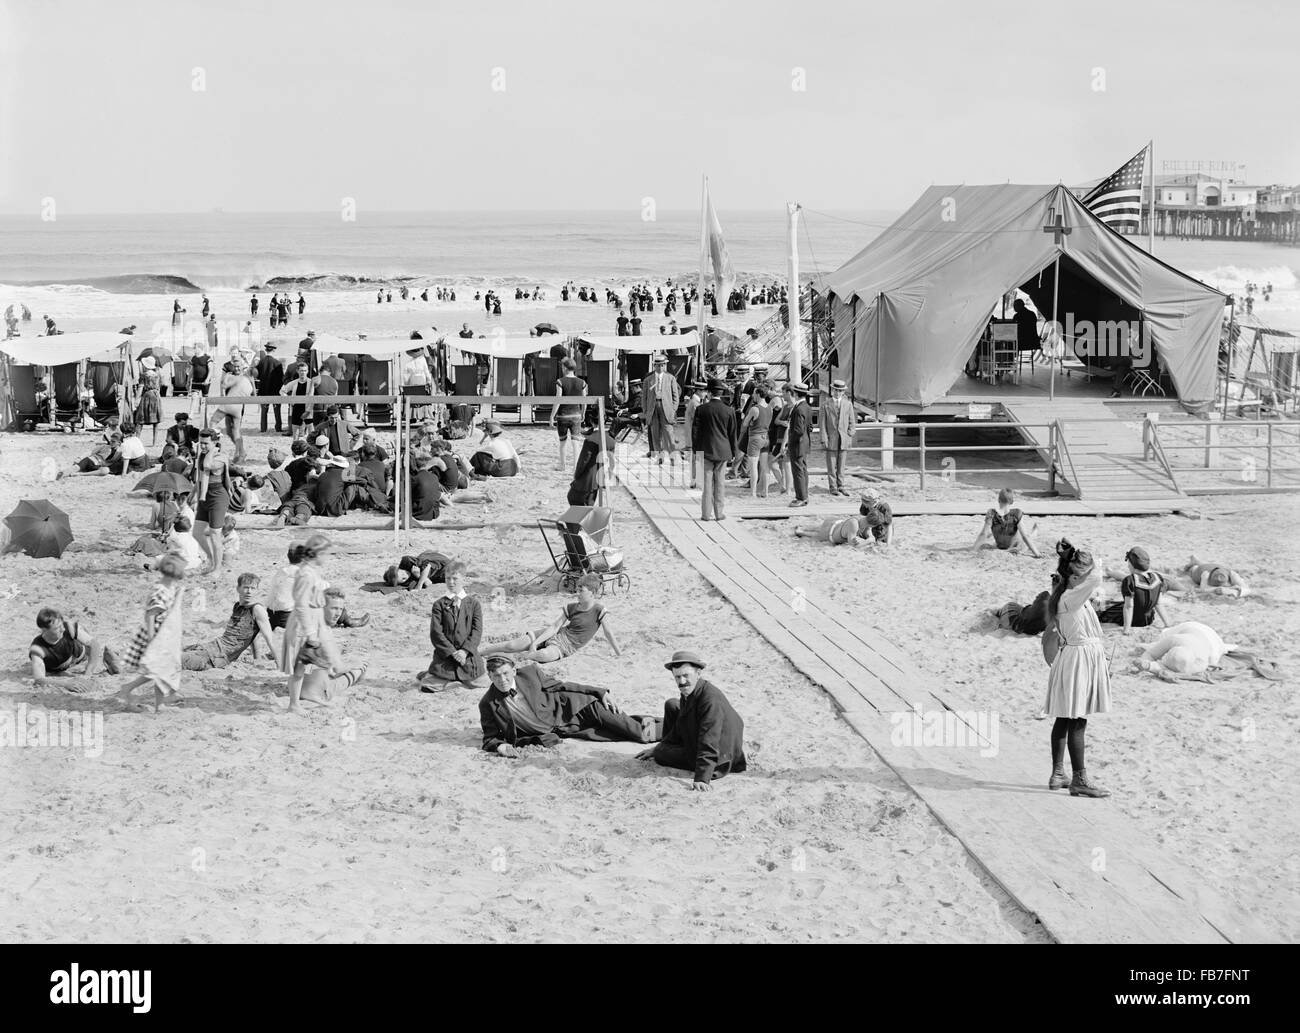 Beach Scene with First Aid Tent, Atlantic City, New Jersey, USA, circa 1910 - Stock Image